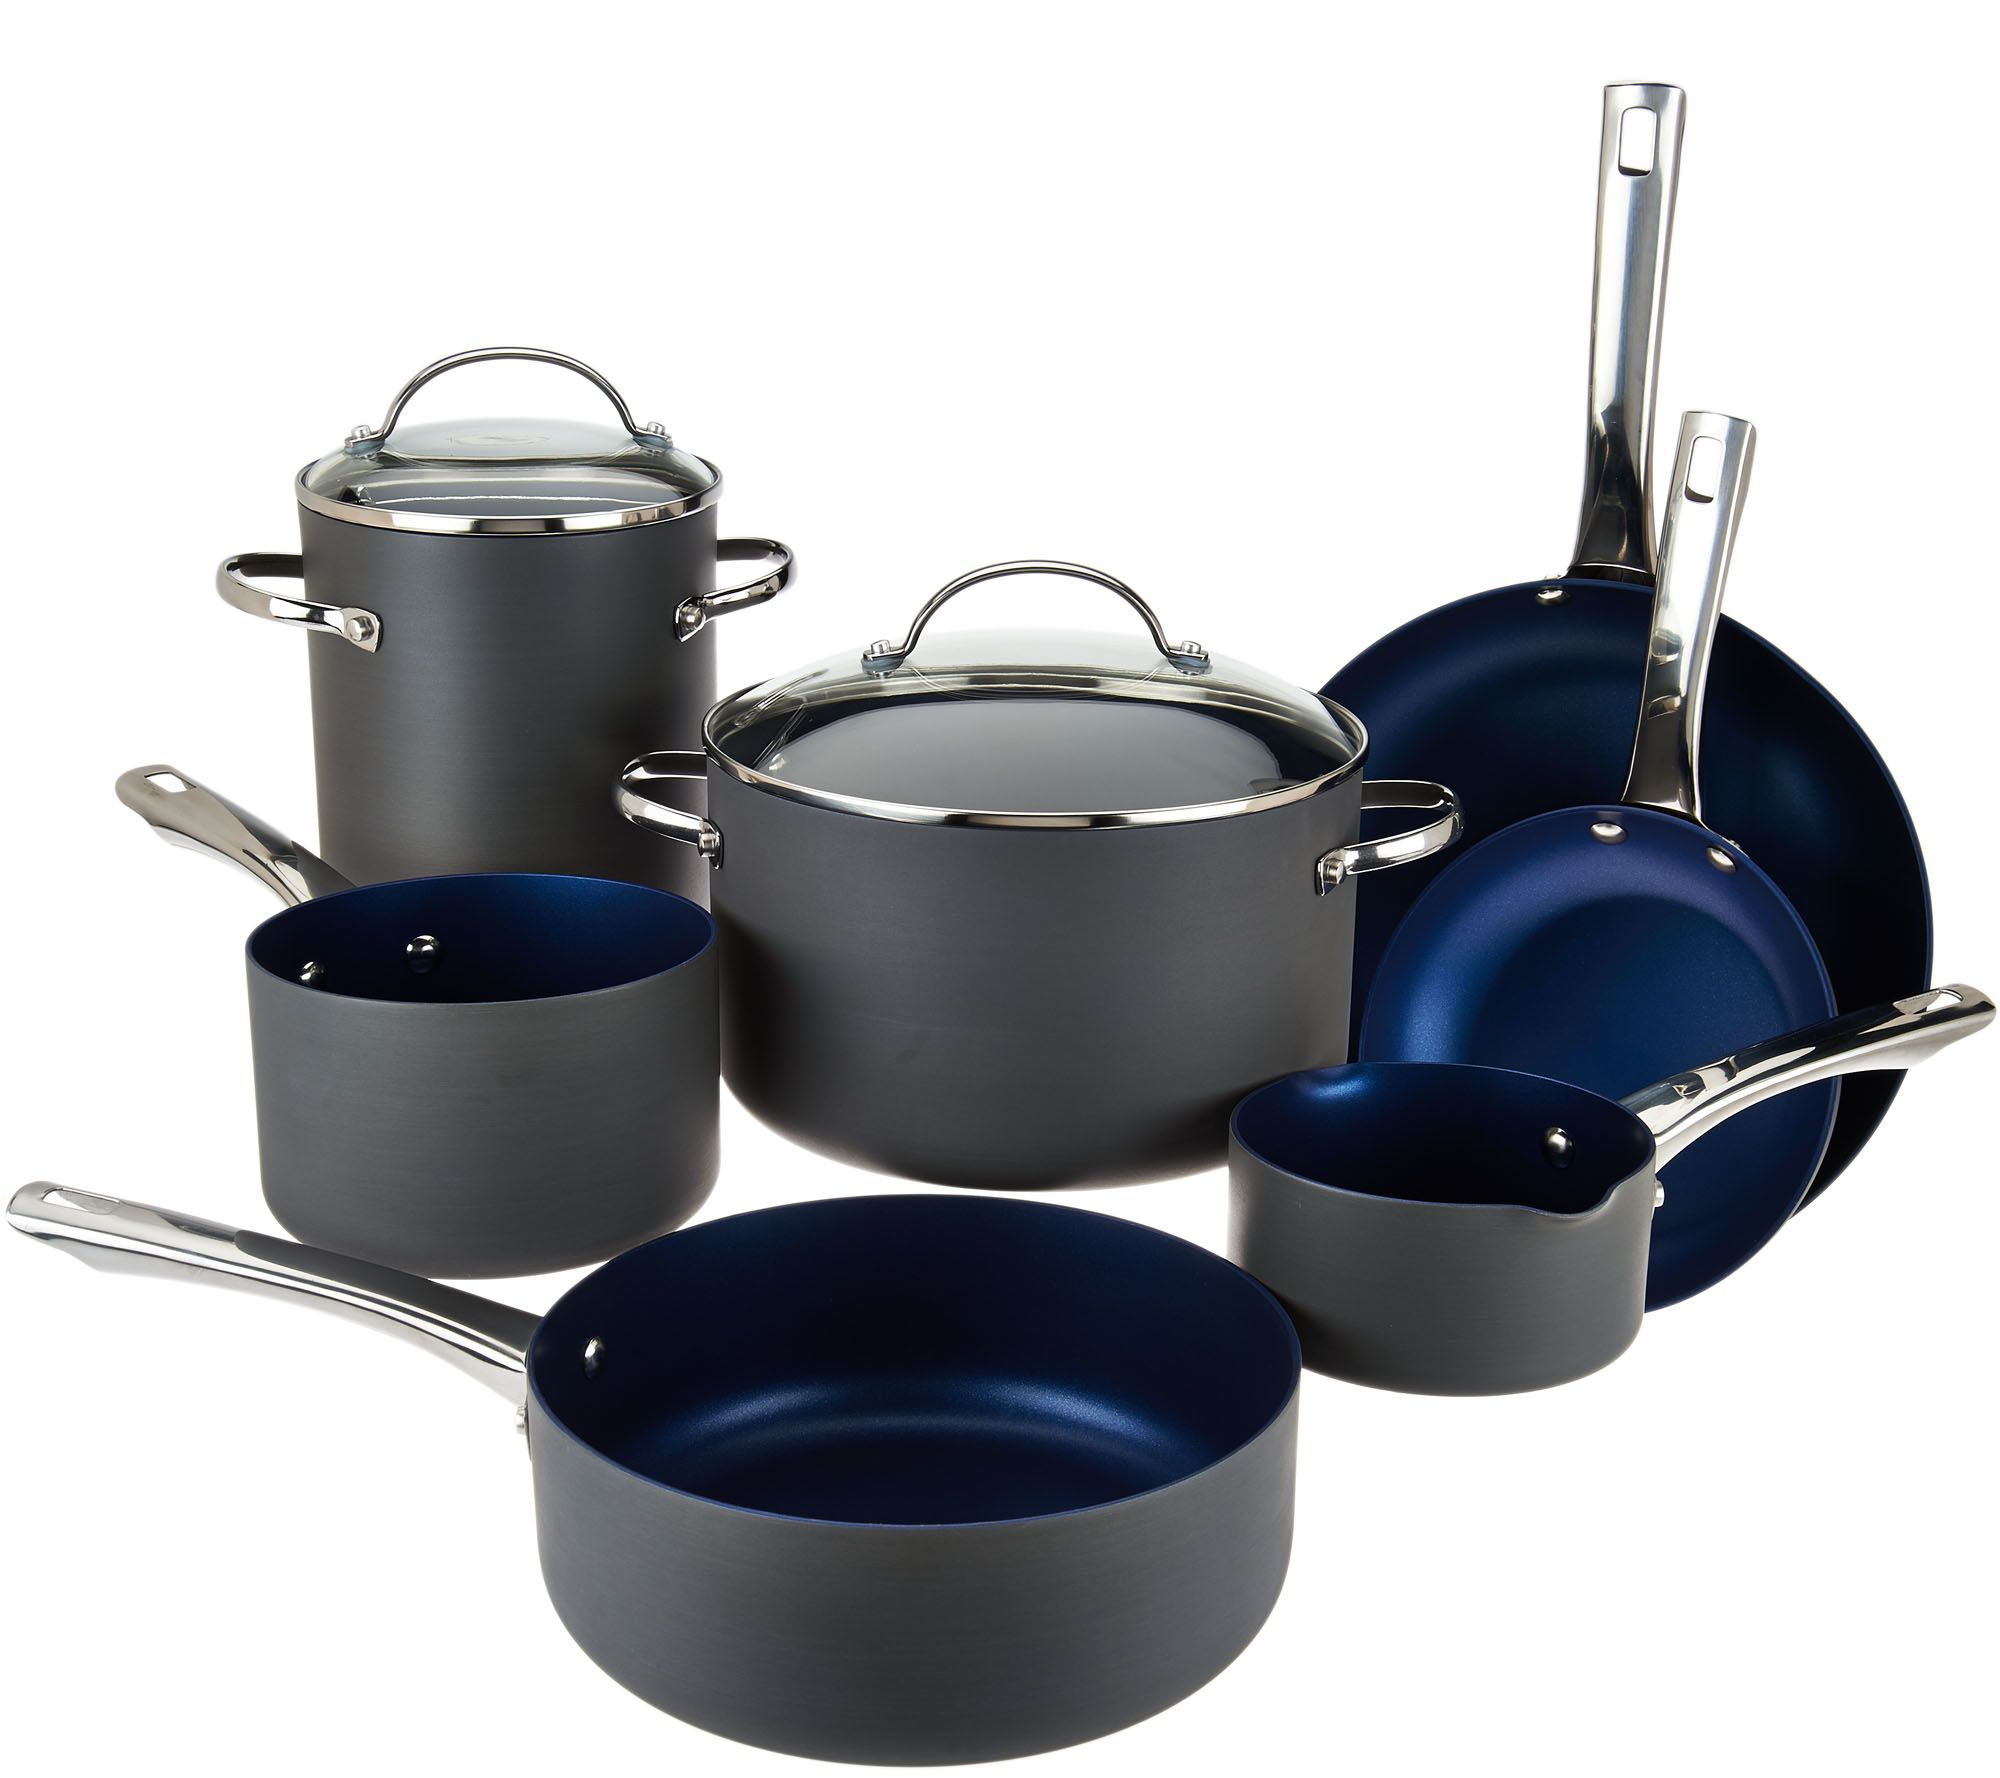 Cook's Essentials 10pc Non-Stick Hard Anodized Cookware Set - Page ...